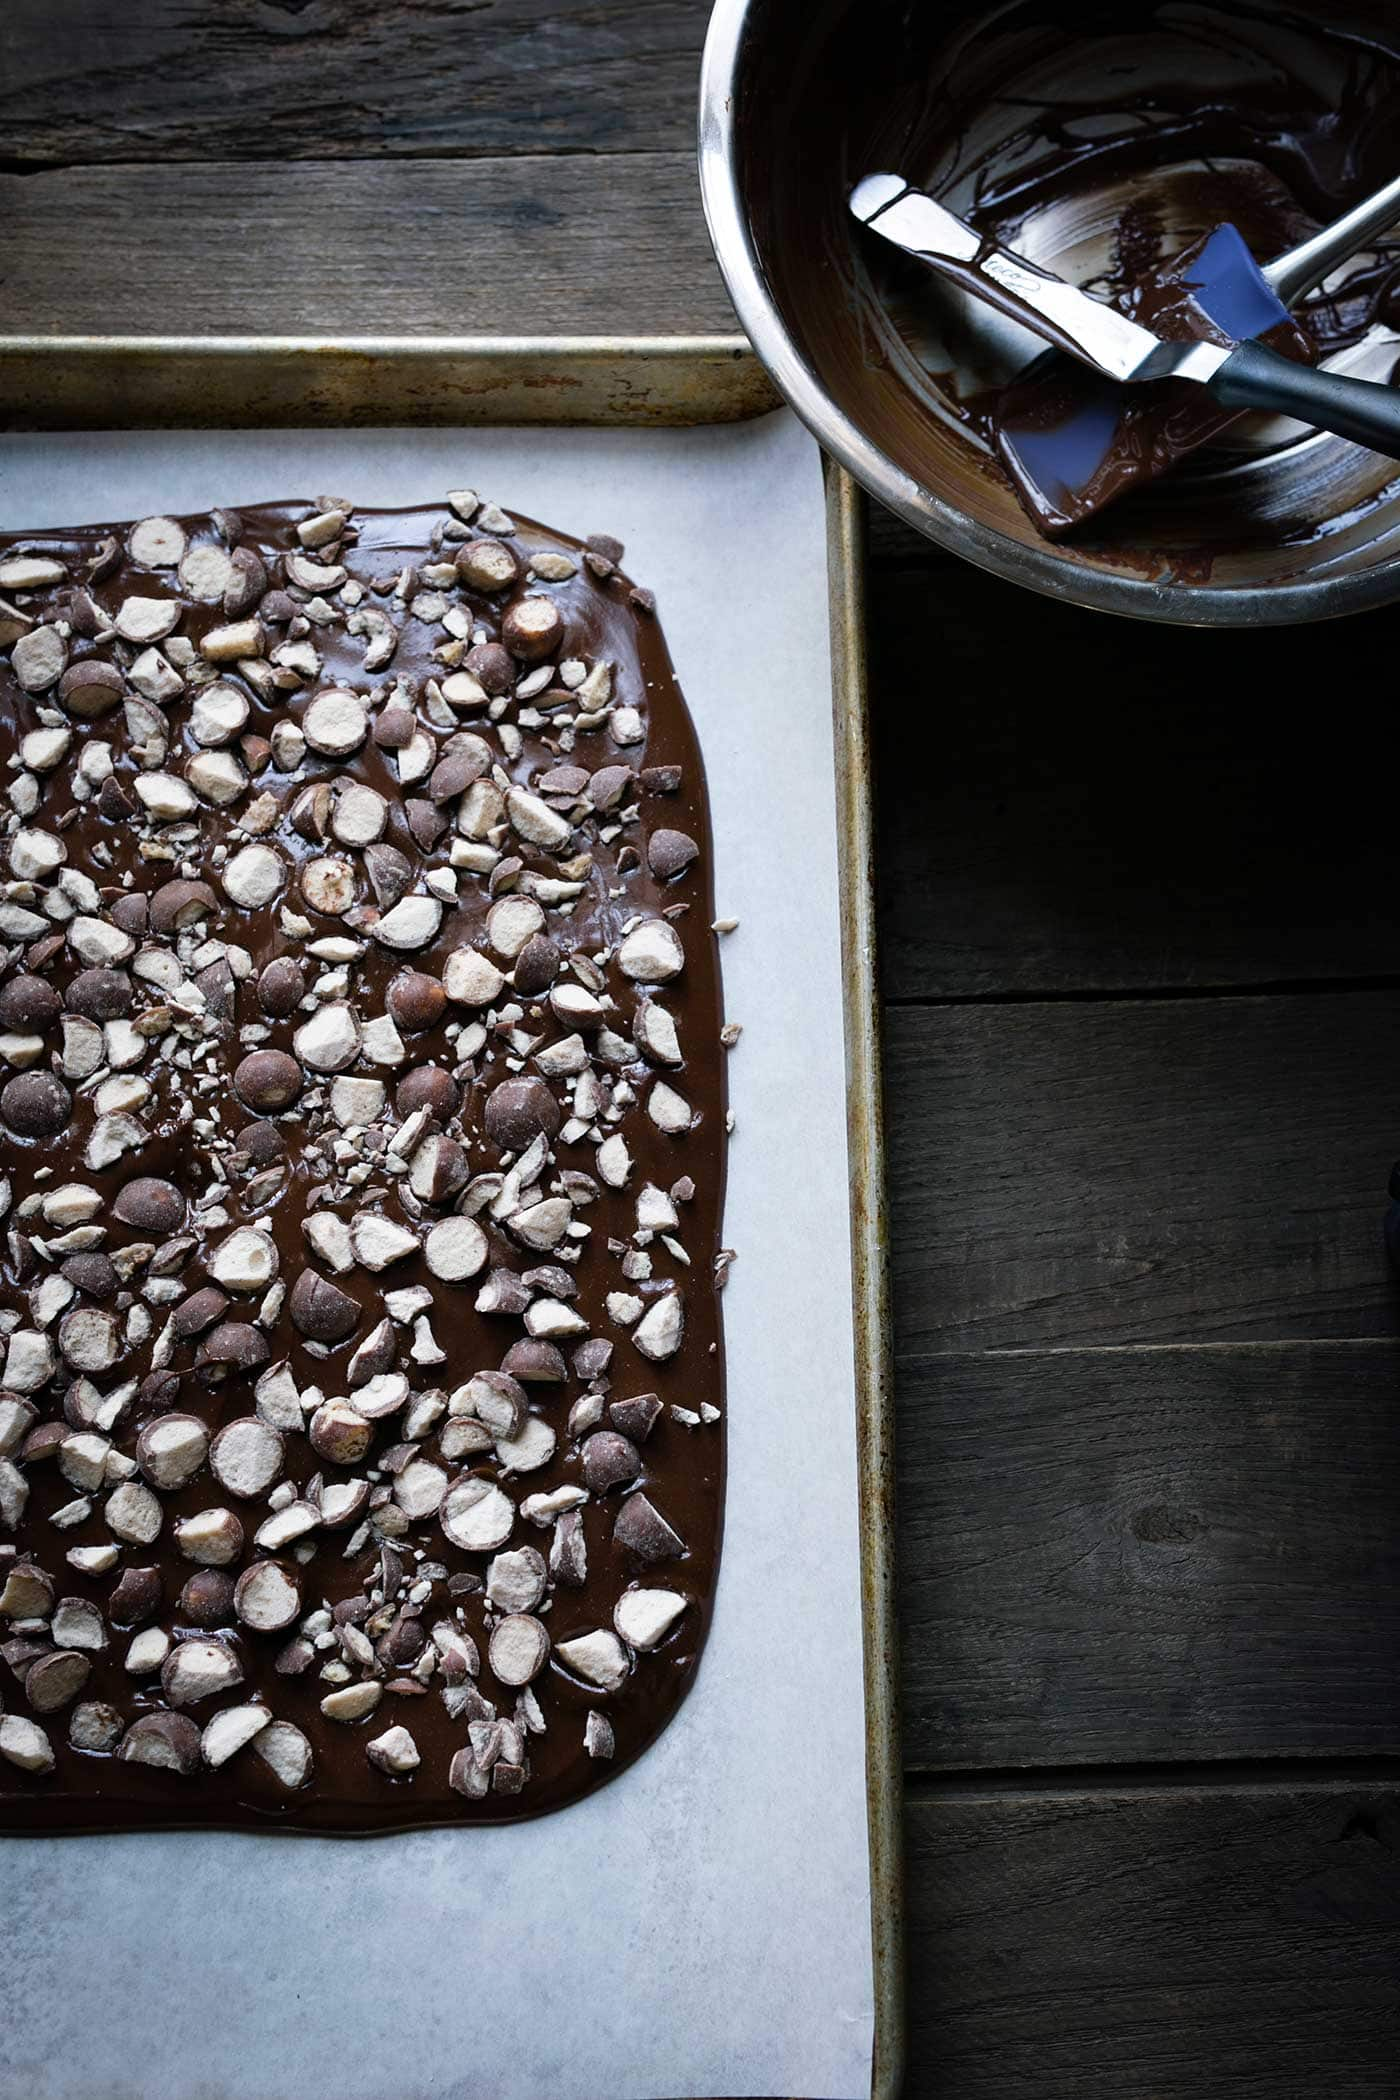 Chocolate Malt Bark is such an easy holiday dessert recipe with only 4 ingredients! It's ready in no time. Get the easy-to-follow recipe from SavorySimple.net!